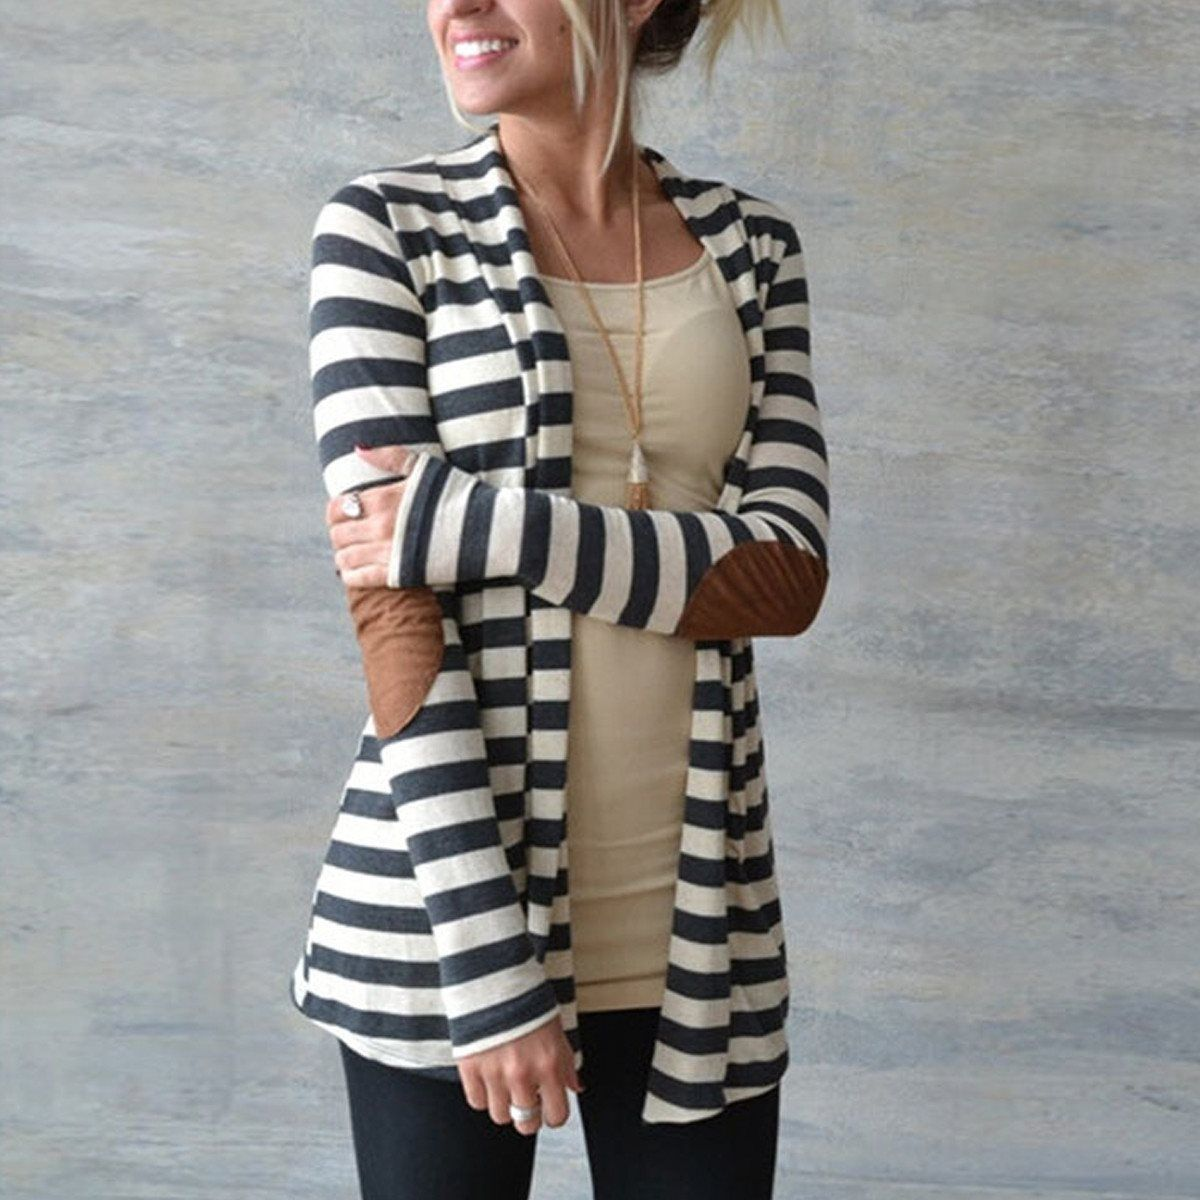 Long Sleeve Striped Printed Cardigan Casual Elbow Patchwork ...